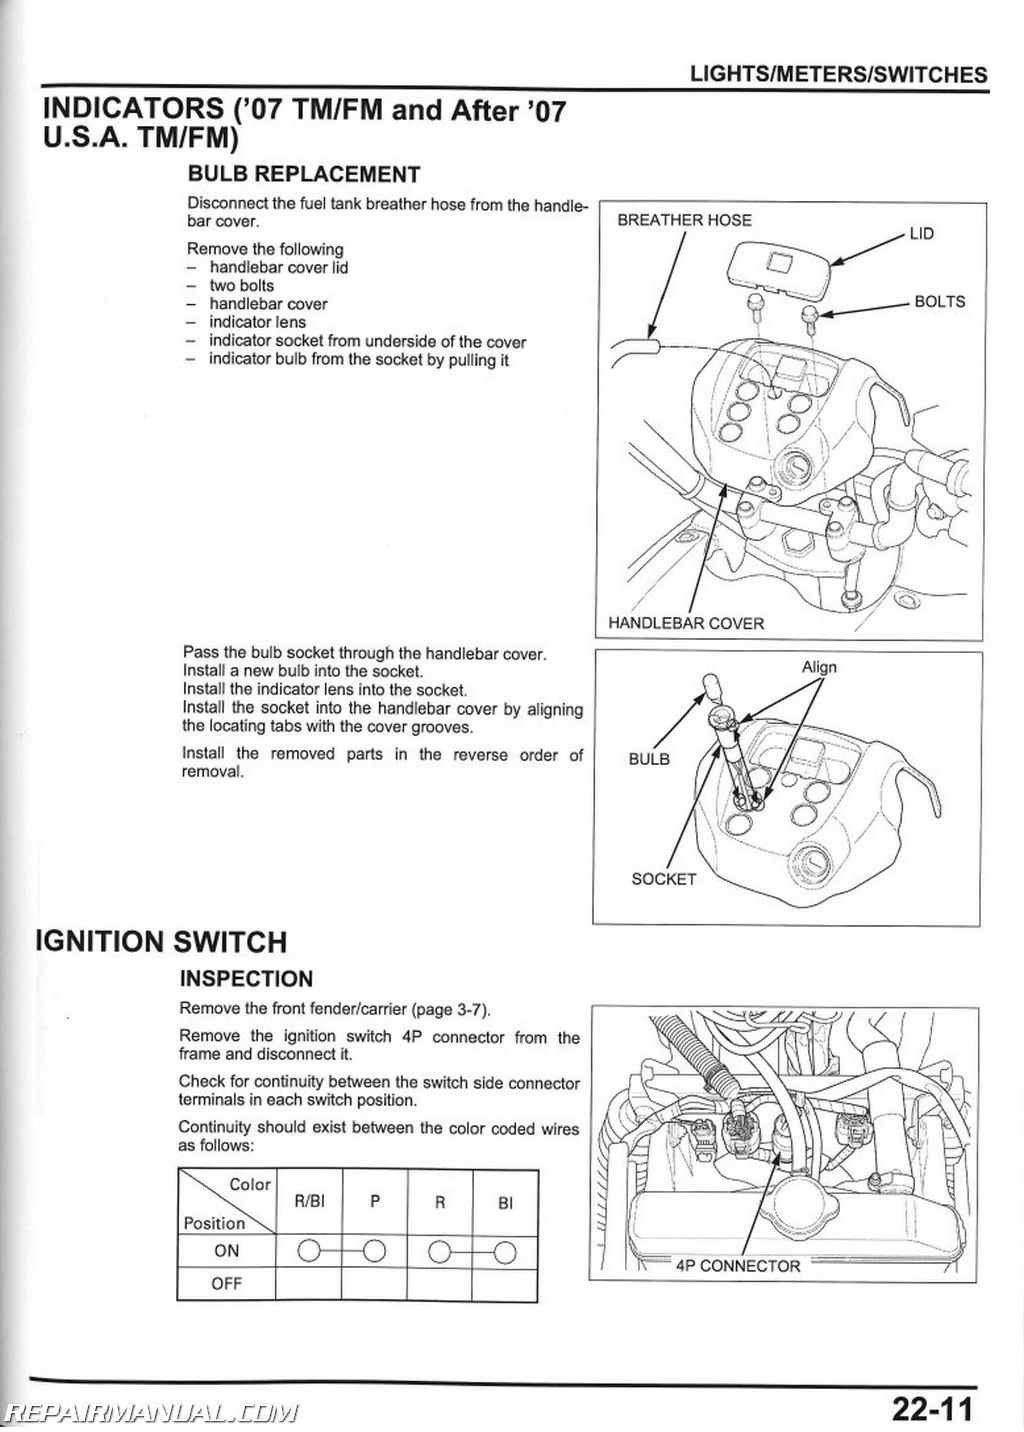 2011 honda rancher wiring diagram basic guide wiring diagram 2007 2013 honda trx420fe fm te tm fpe fpm atv rancher service manual rh repairmanual com honda rancher fuel system diagram diagram of 2000 honda rancher 350 swarovskicordoba Choice Image